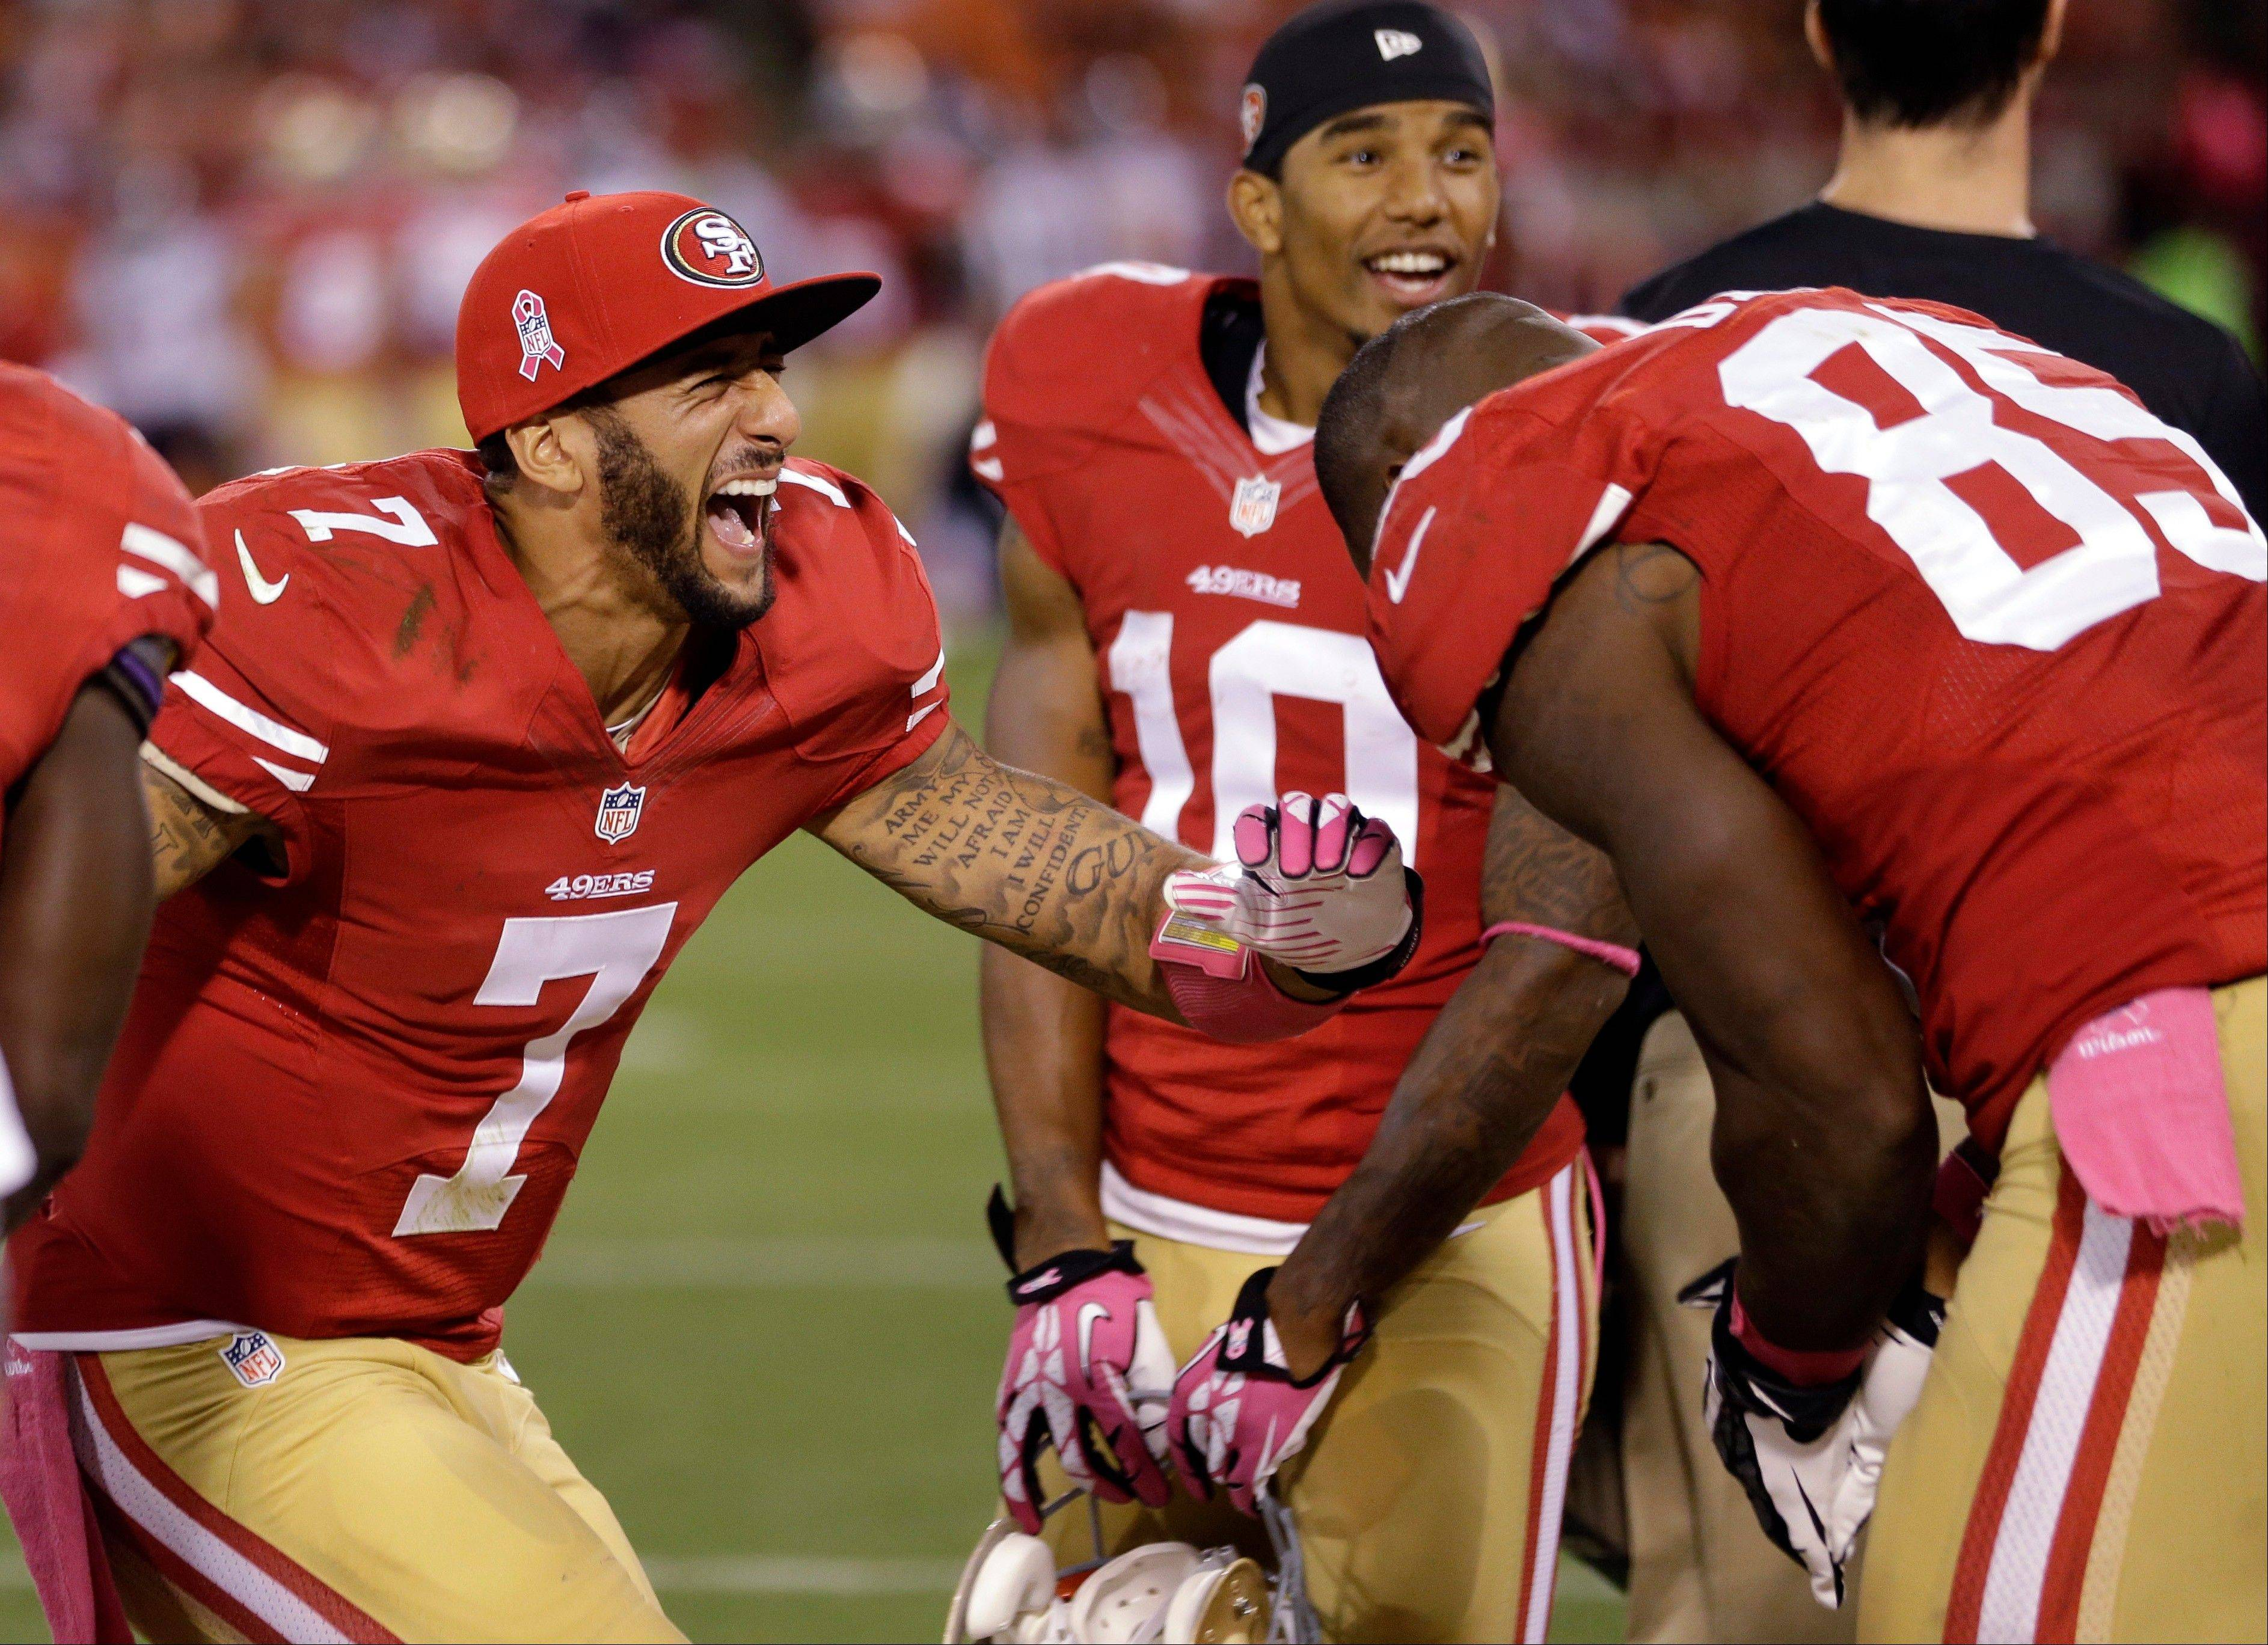 San Francisco 49ers quarterback Colin Kaepernick (7) and tight end Vernon Davis, right, laugh after winning their game 34-3 against the Houston Texans during an NFL football game in San Francisco, Sunday, Oct. 6, 2013.